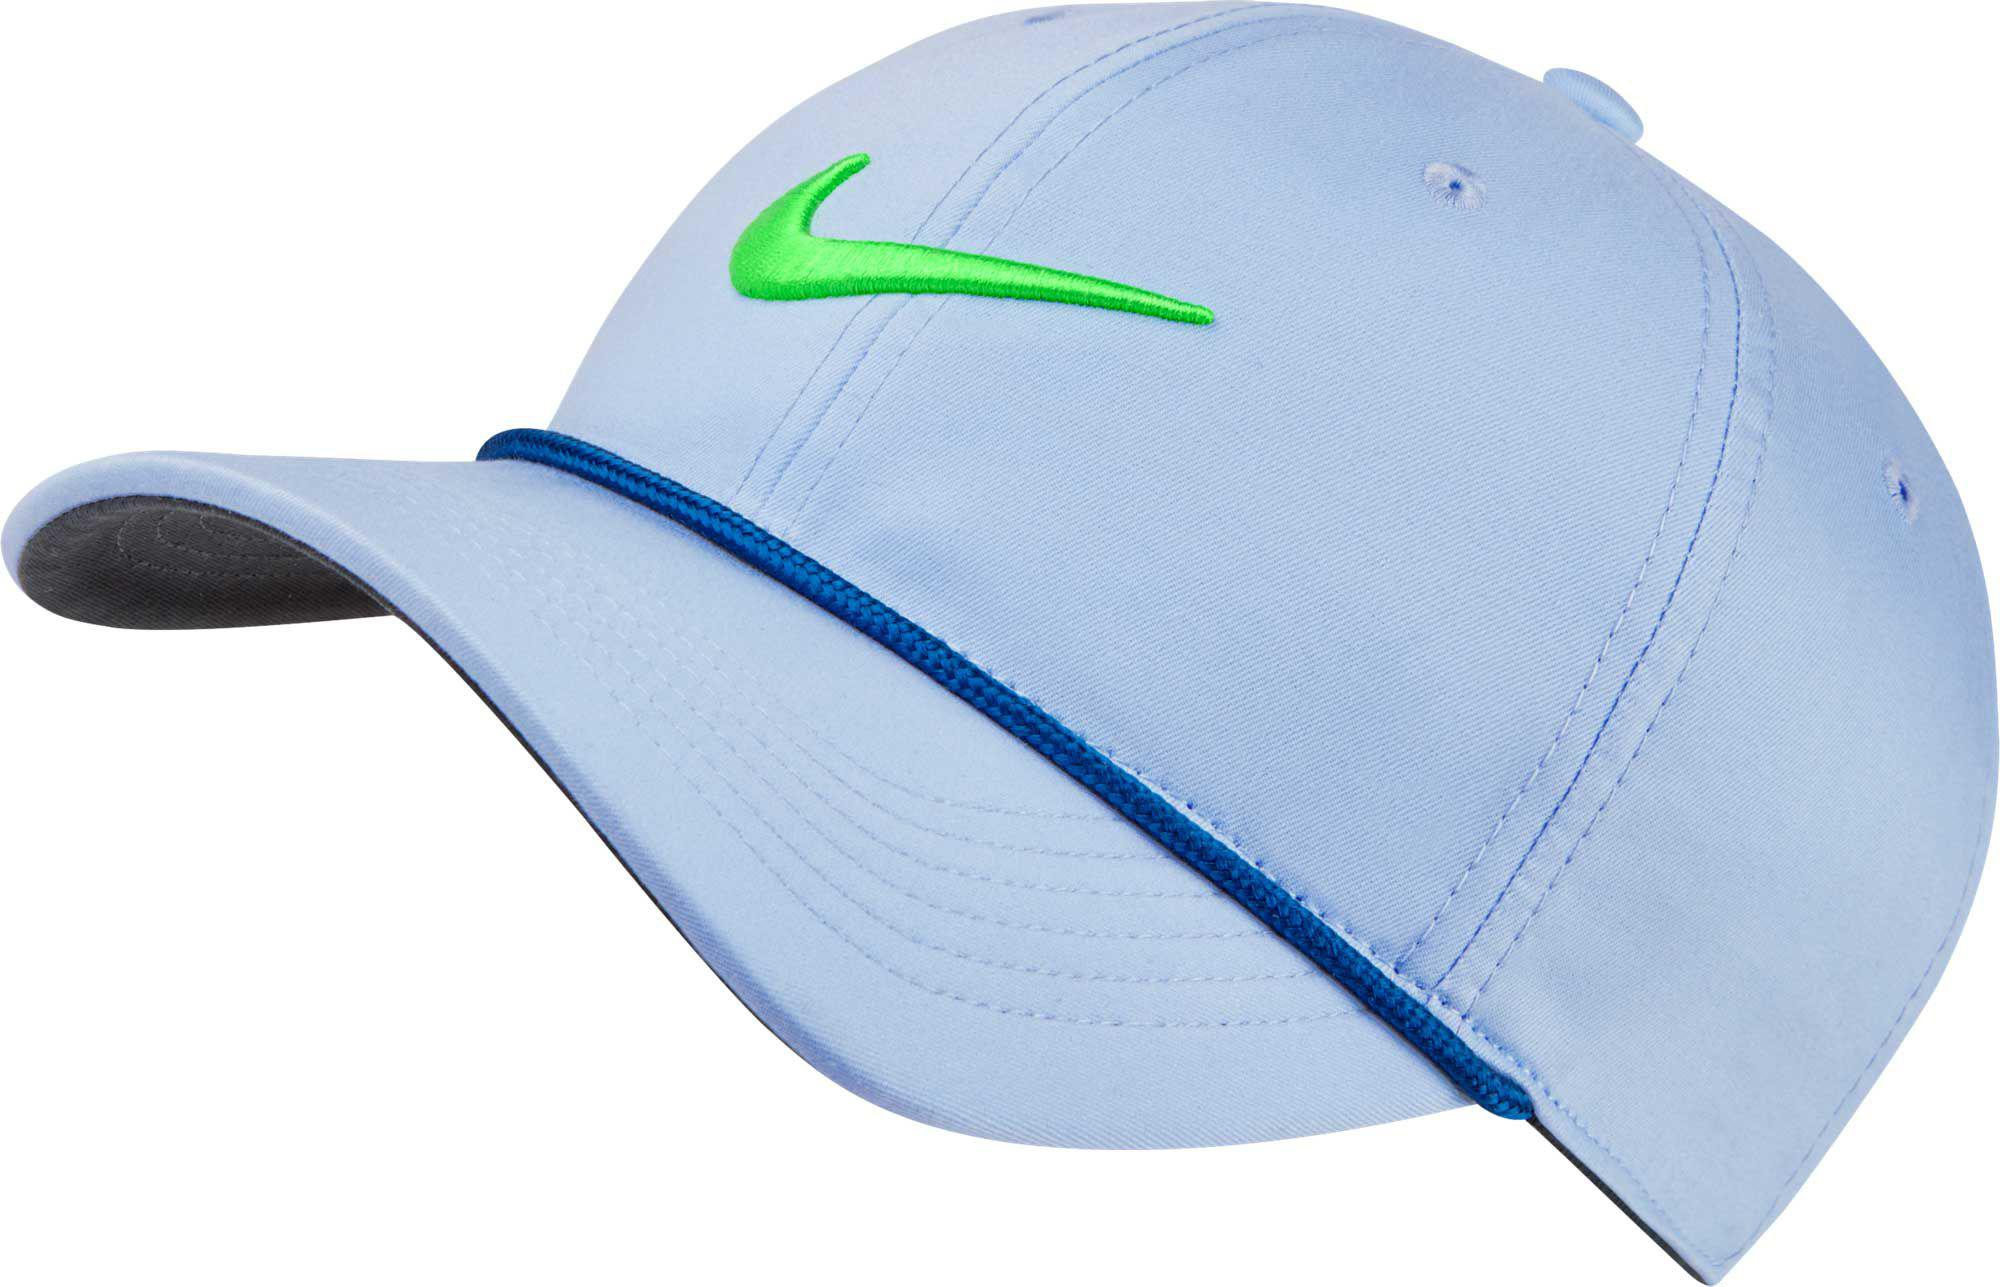 ae837c5a03ce2 Lyst - Nike Aerobill Classic99 Golf Hat in Blue for Men